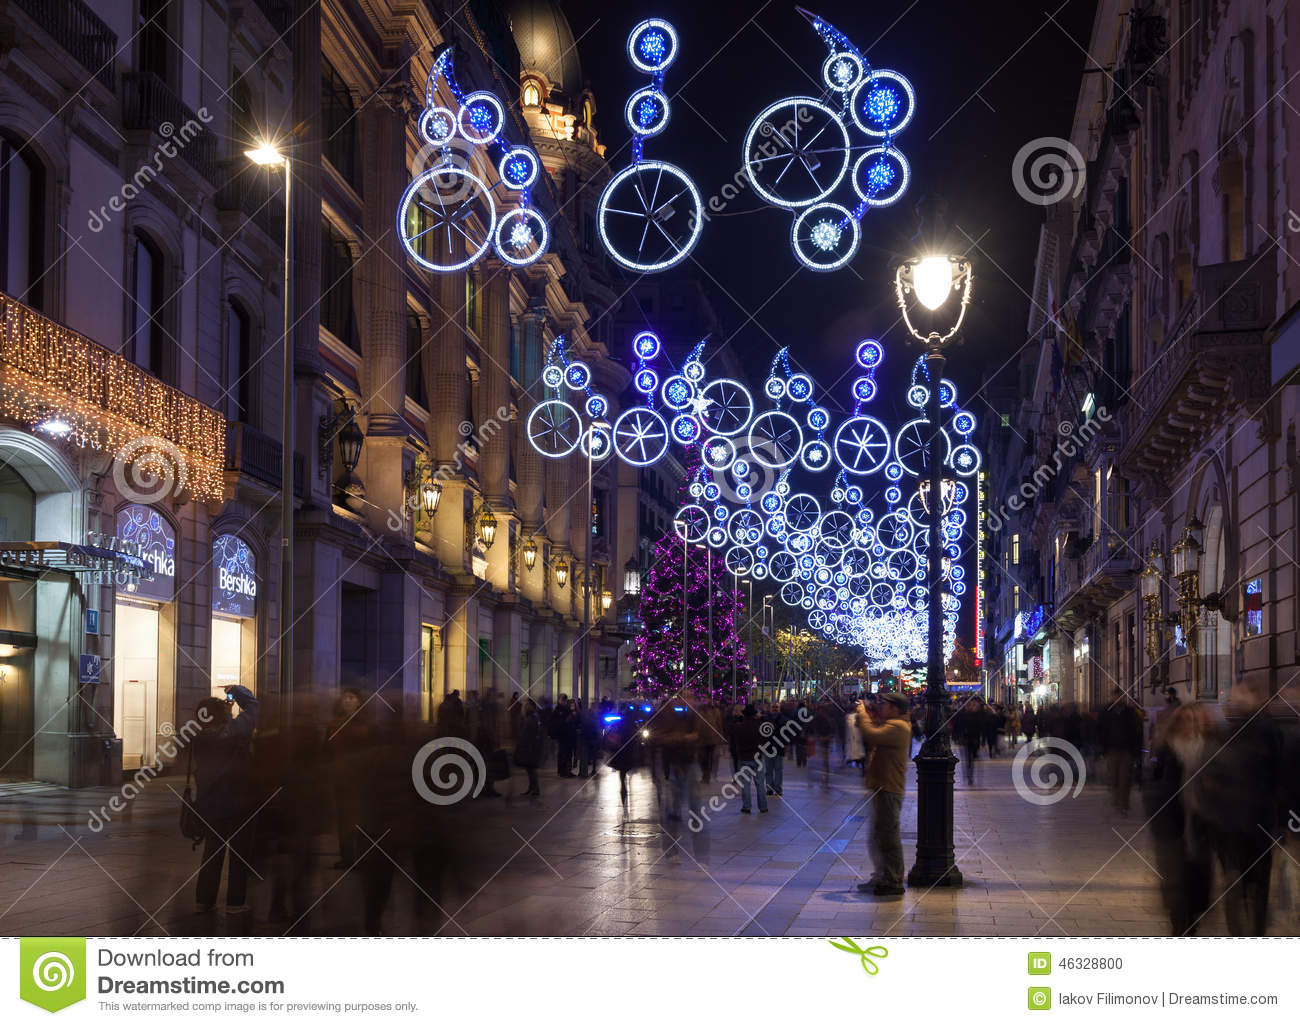 Christmas In Barcelona Spain.Christmas Decorations In Barcelona Spain Editorial Image